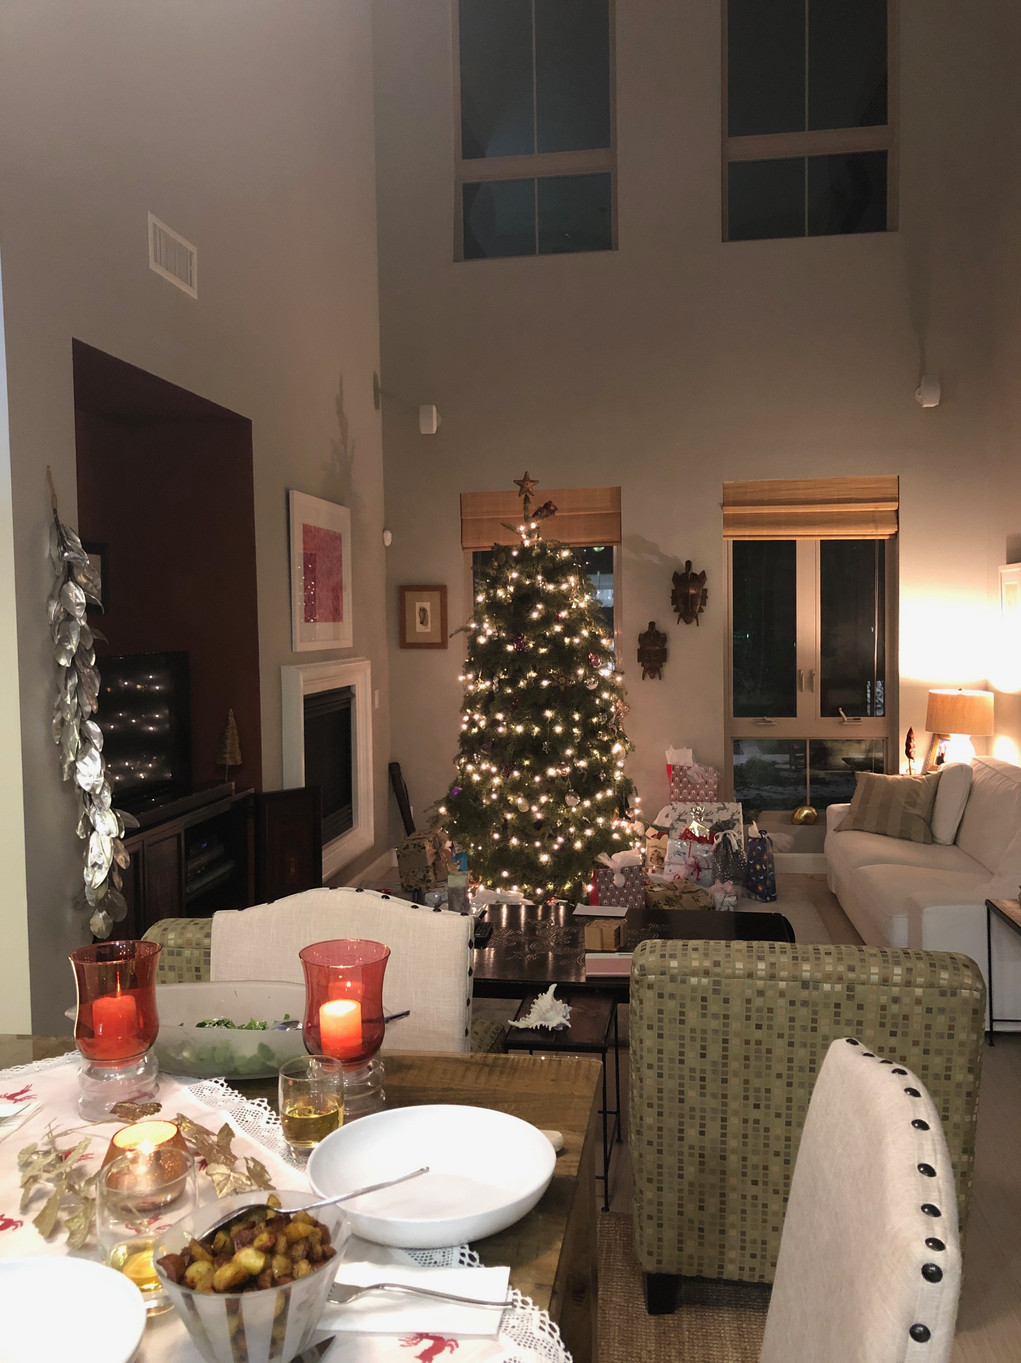 Our Christmas Eve Living Room